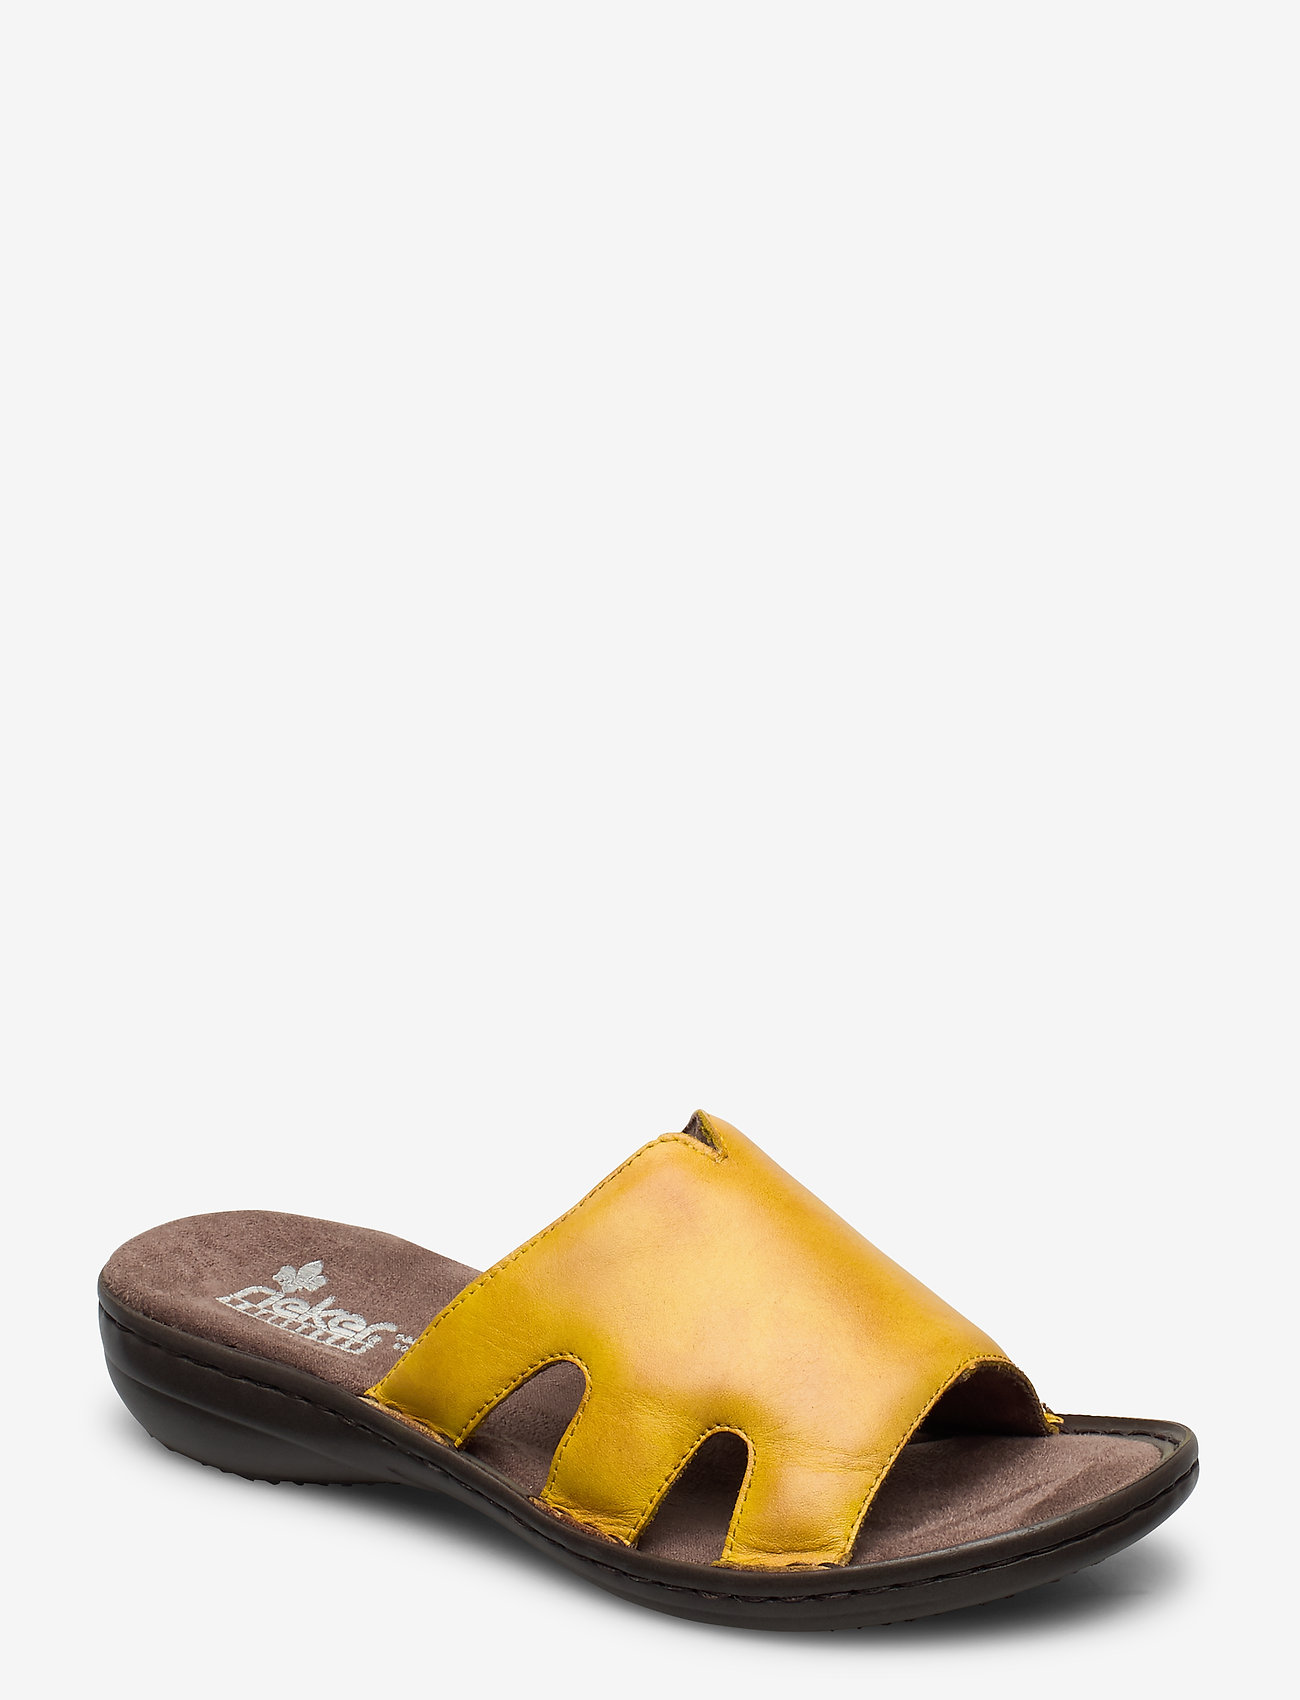 Rieker - 60824-00 - flat sandals - yellow